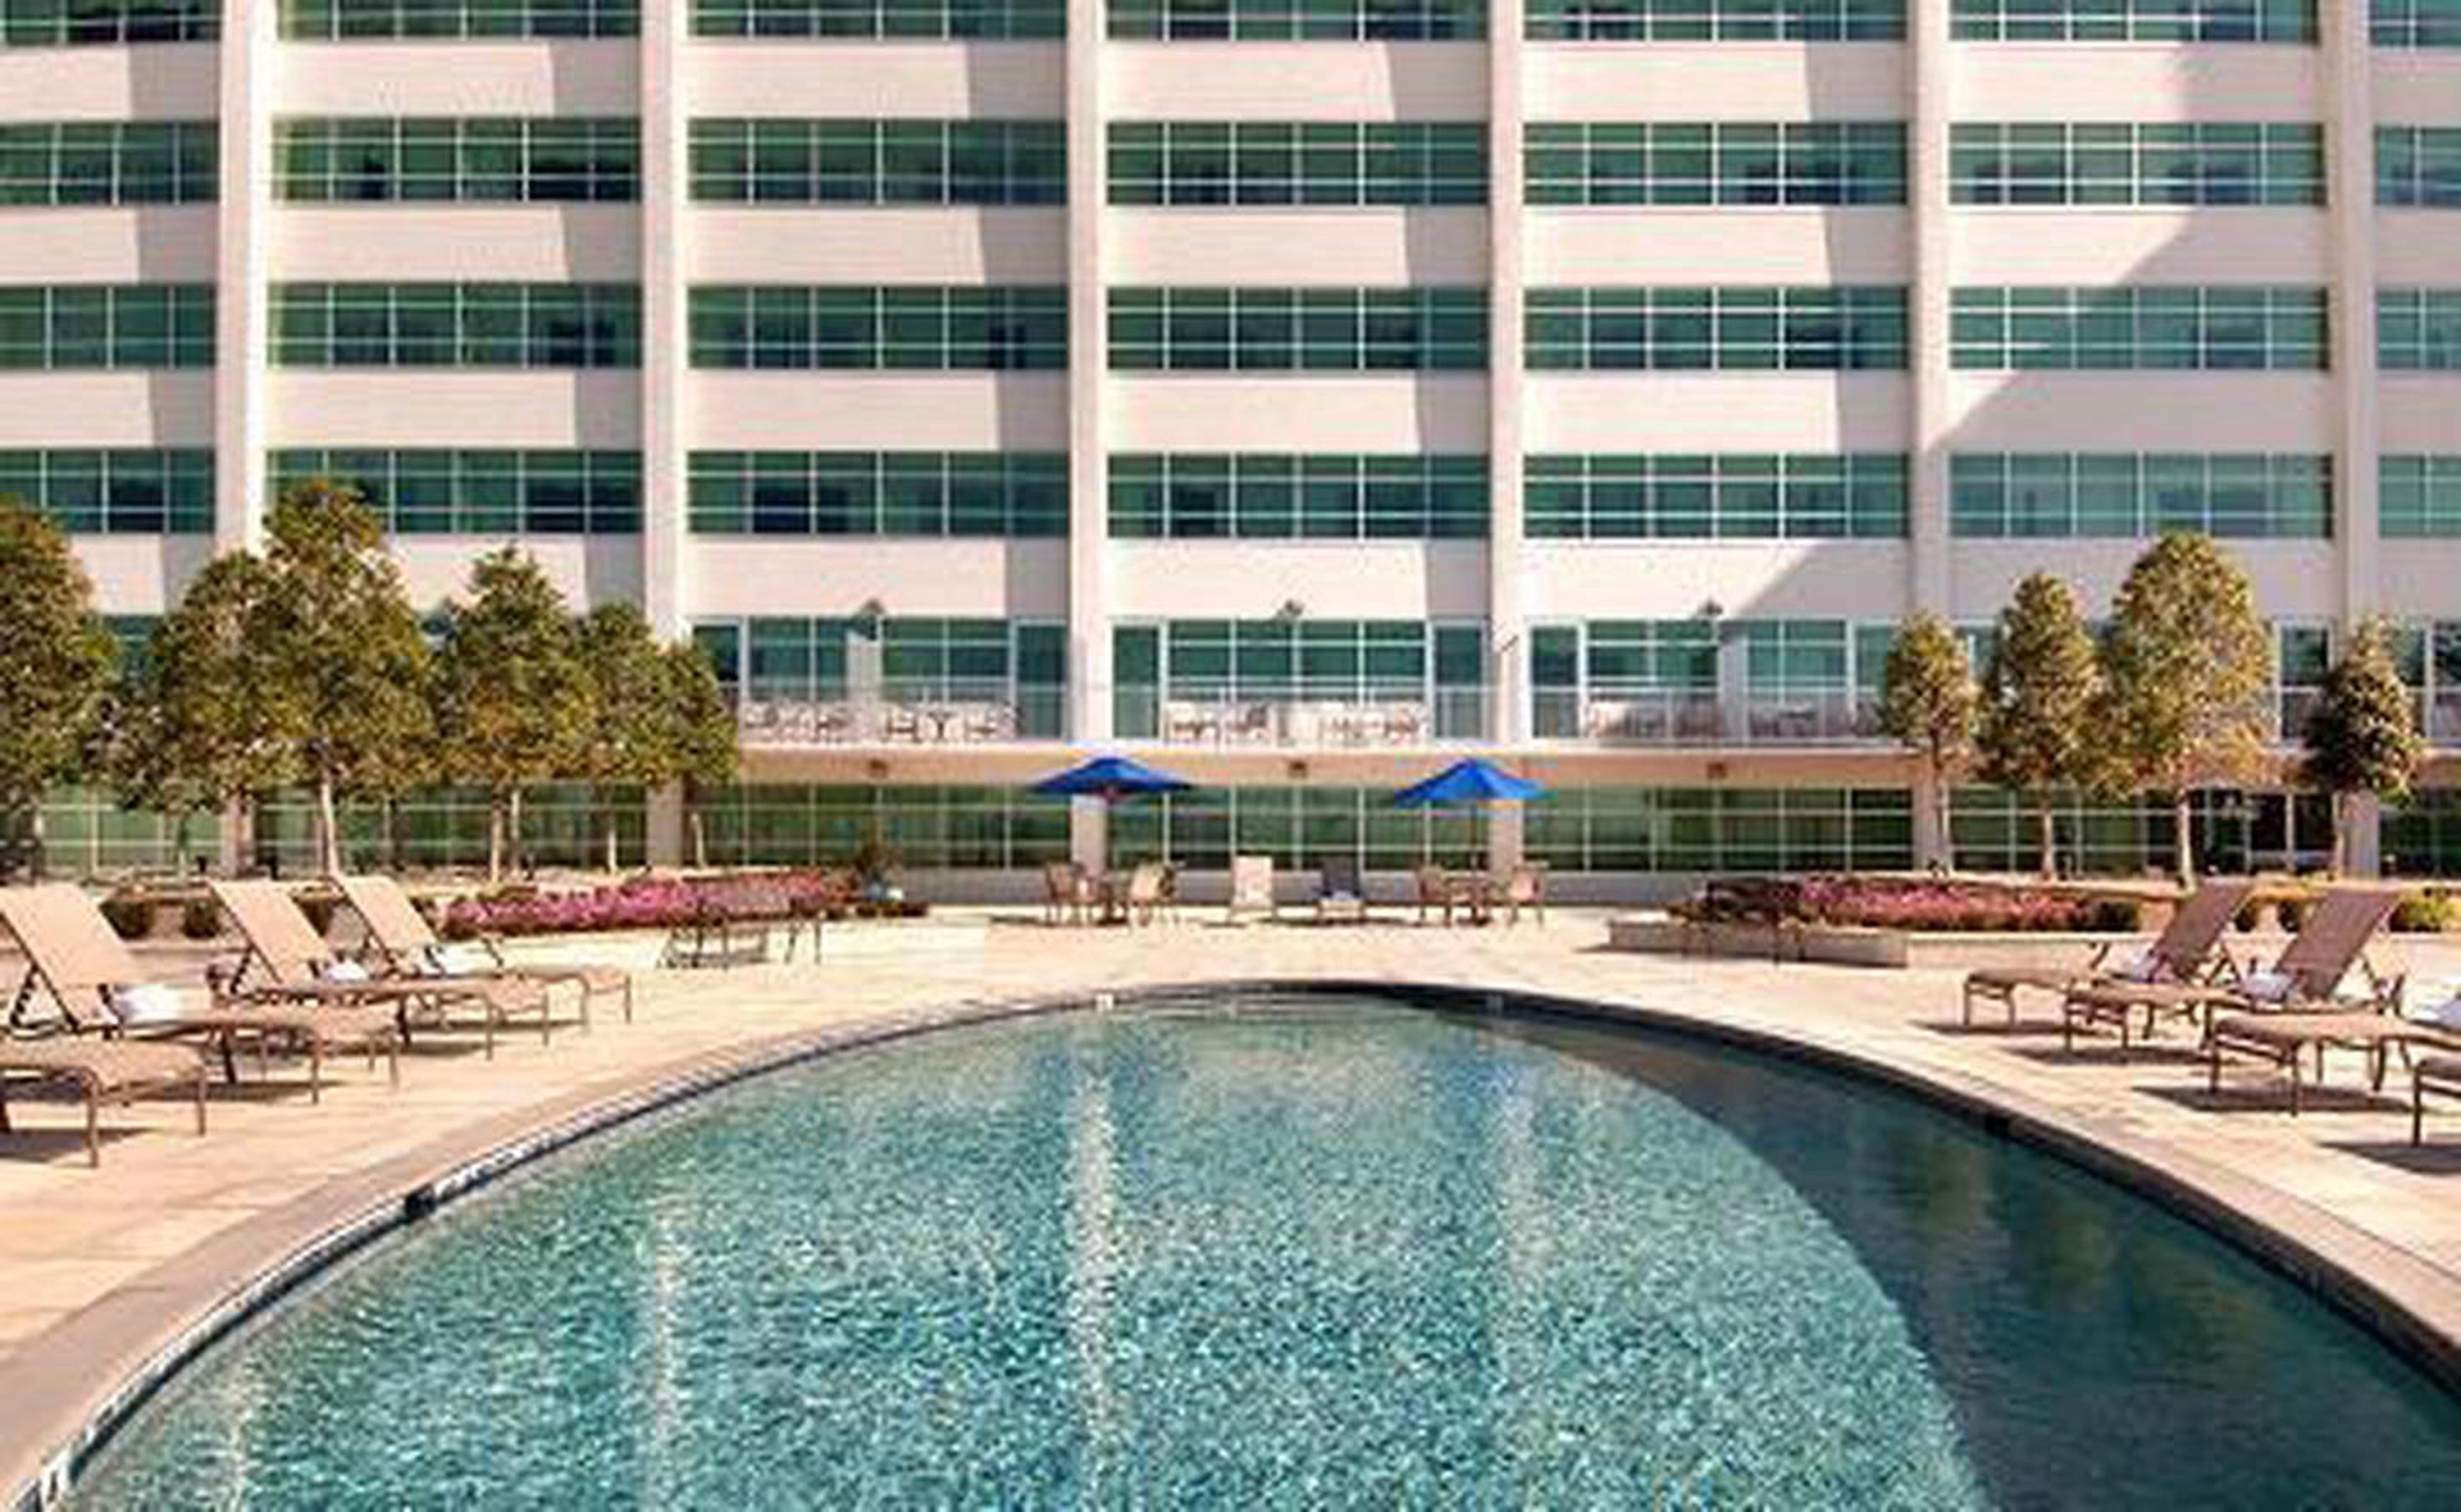 Oasis in the CityTake a break during a busy convention or bustling vacation to enjoy the activities on-site including an outdoor swimming pool.